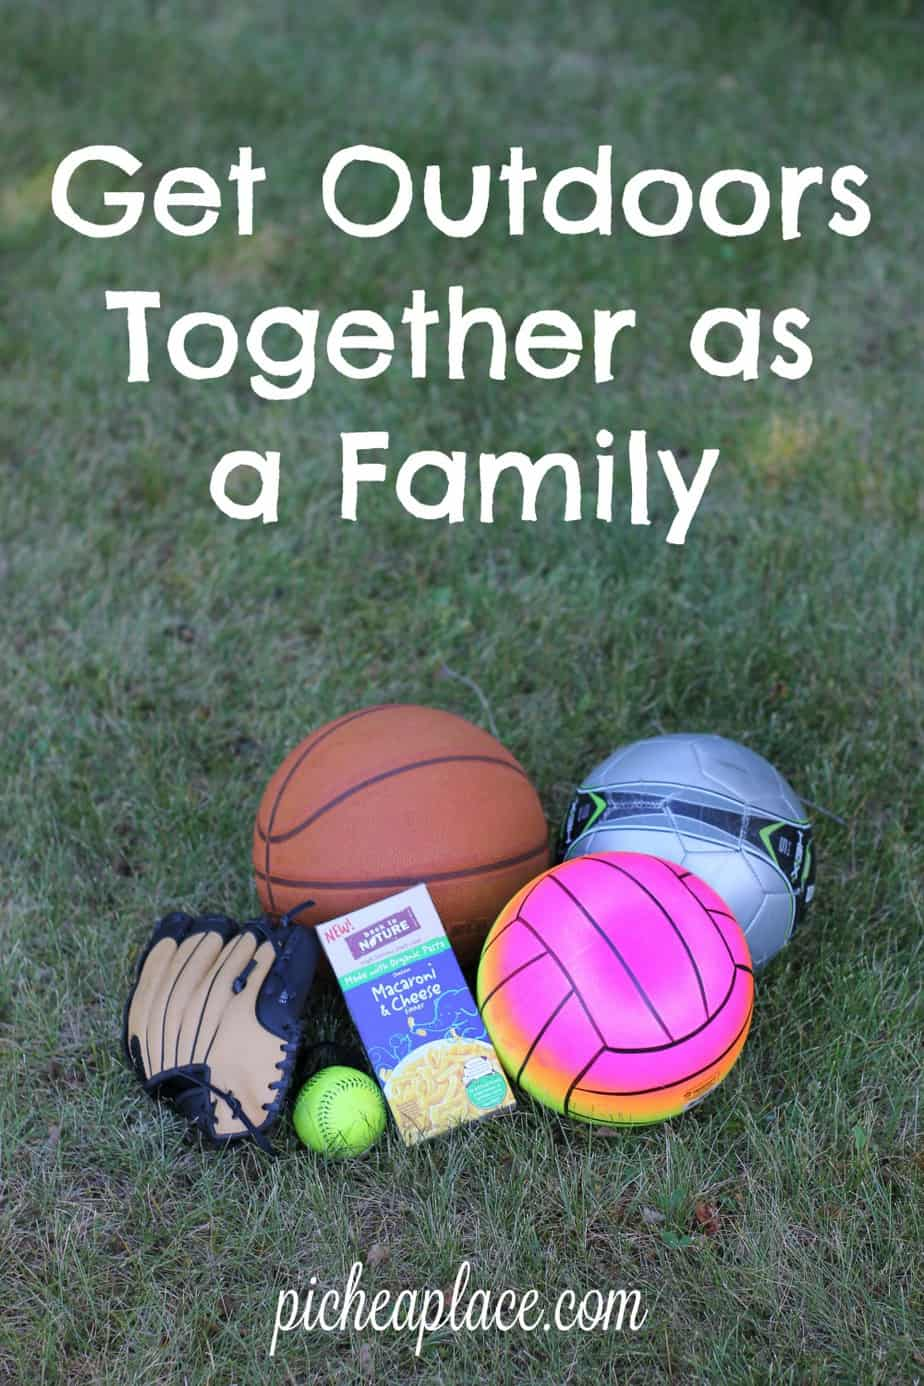 We always enjoy spending time outdoors, whether we're active or just relaxing - it's a great way to get in some quality time together as a family in the midst of a busy season of life.   Get Outdoors Together as a Family